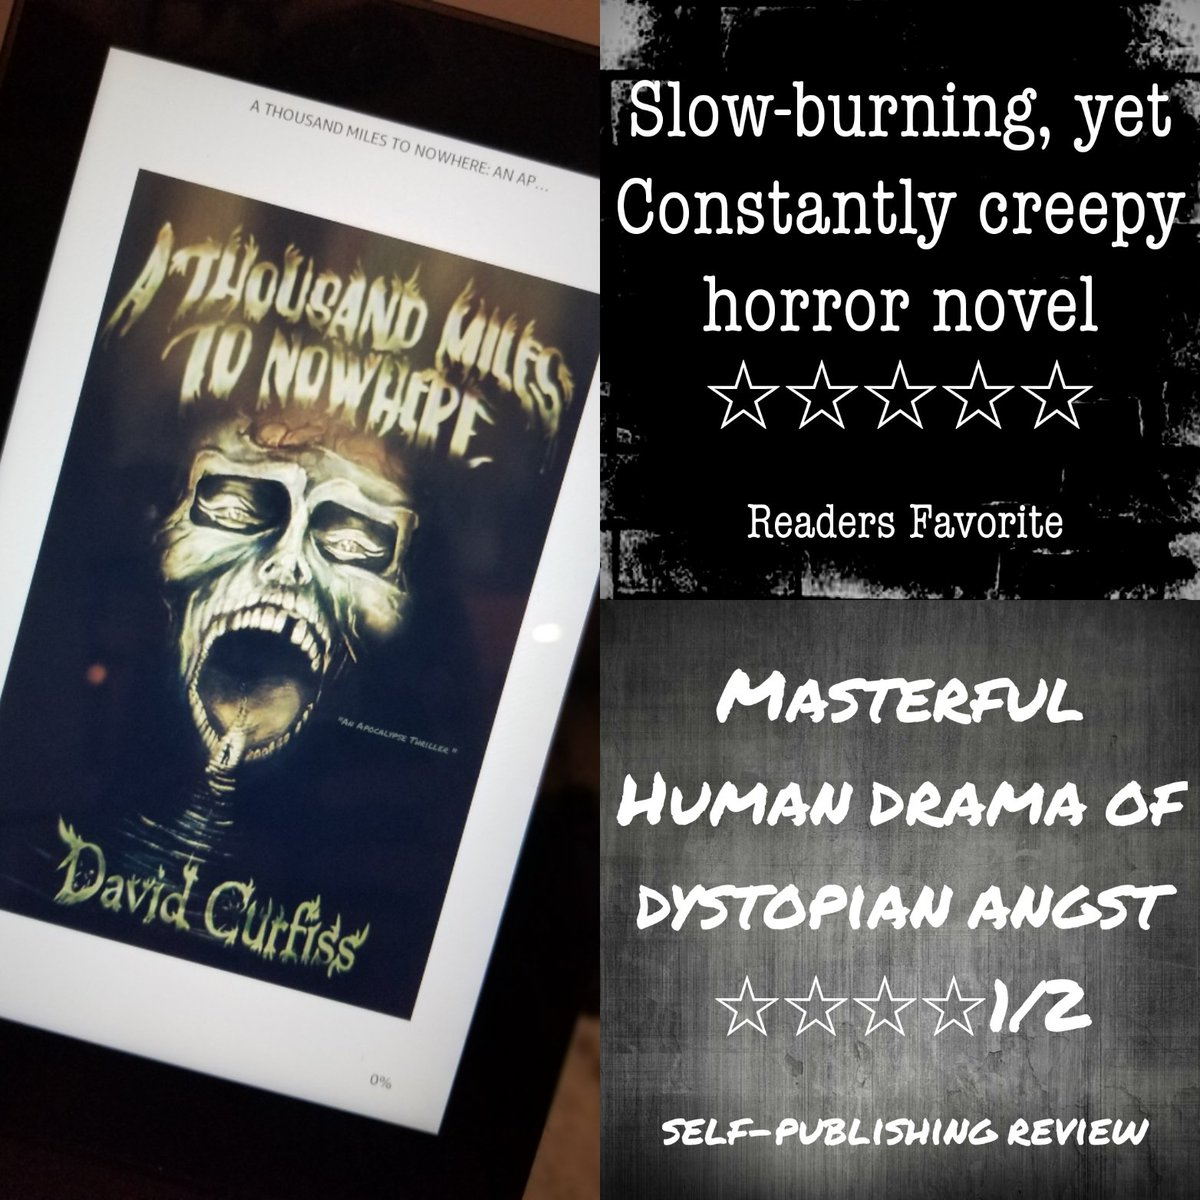 (Sponsored Post) If you like intense thrillers, vivid horror, and thought-provoking narrative, then you will enjoy this horror filled novel by David Curfiss https://t.co/gpSRXKK2Po